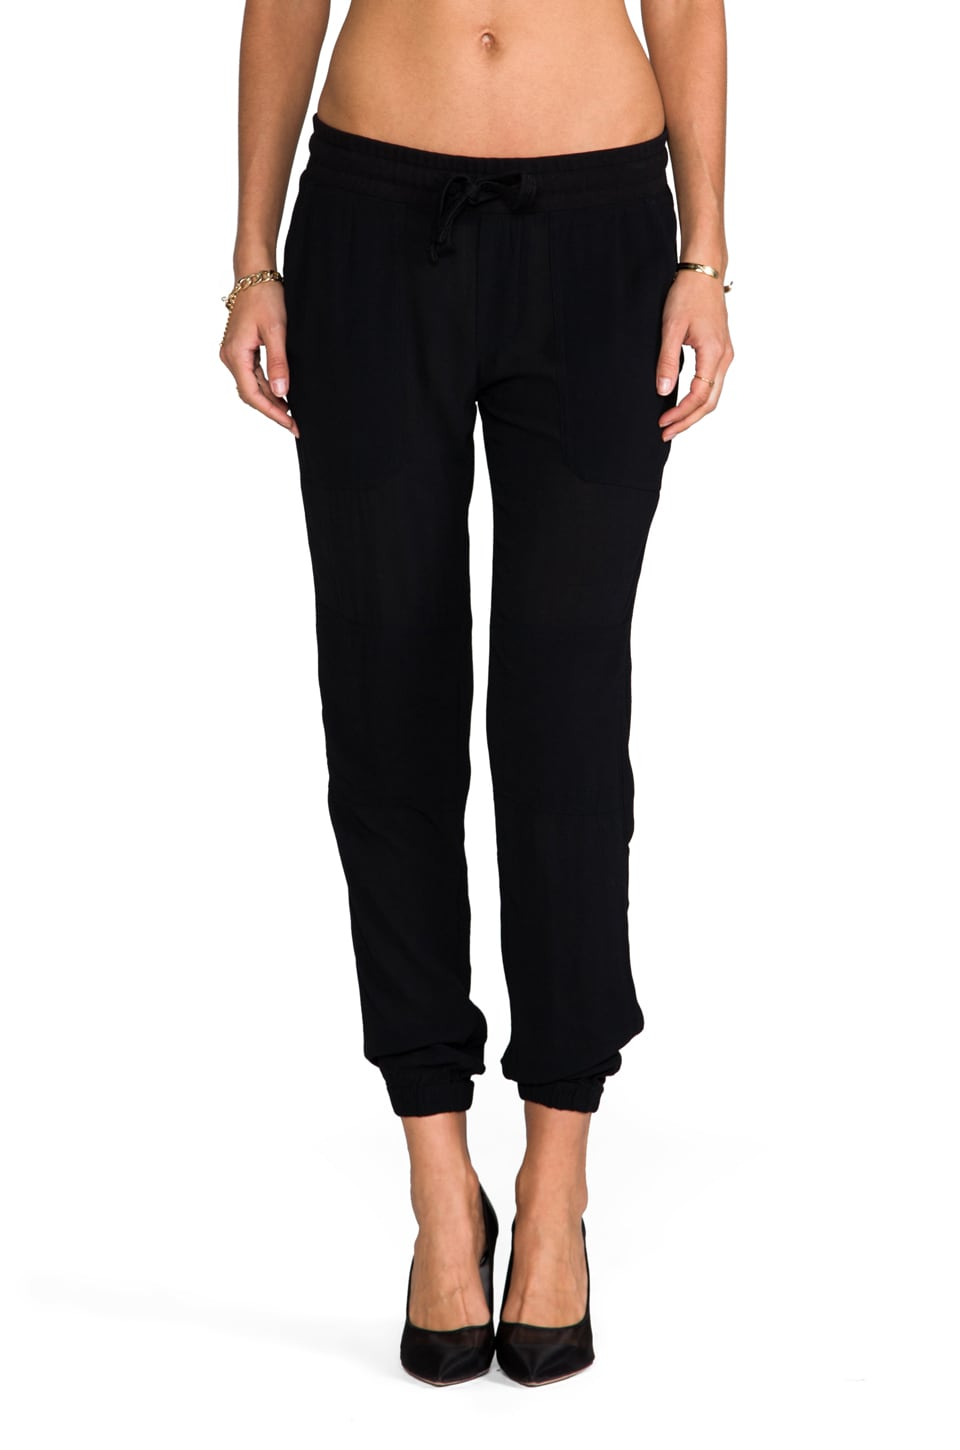 James Perse Crepe Surplus Pant in Black